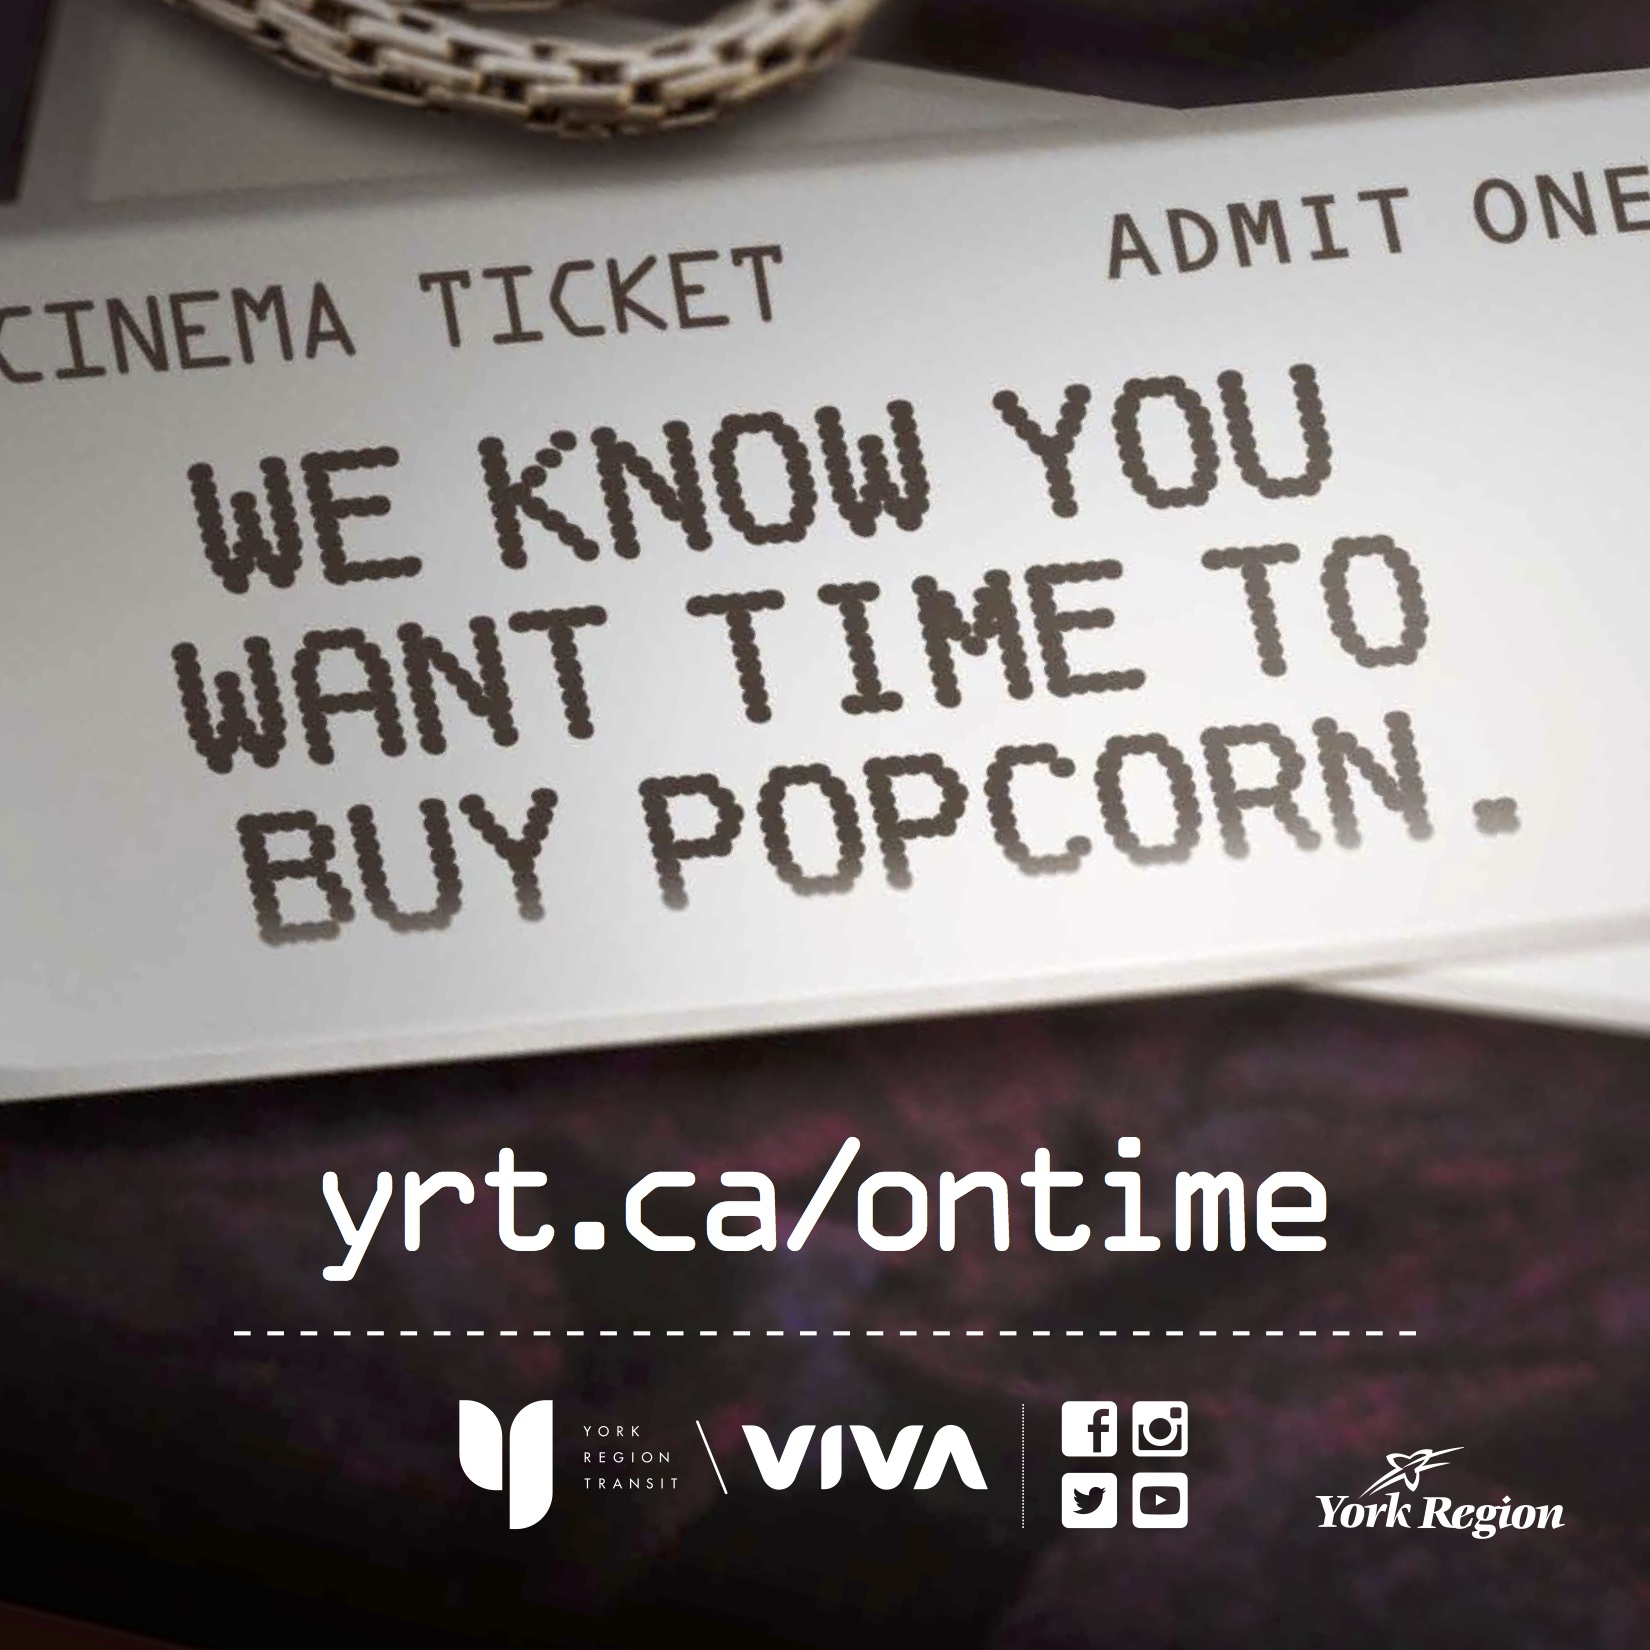 we know you want time to buy popcorn